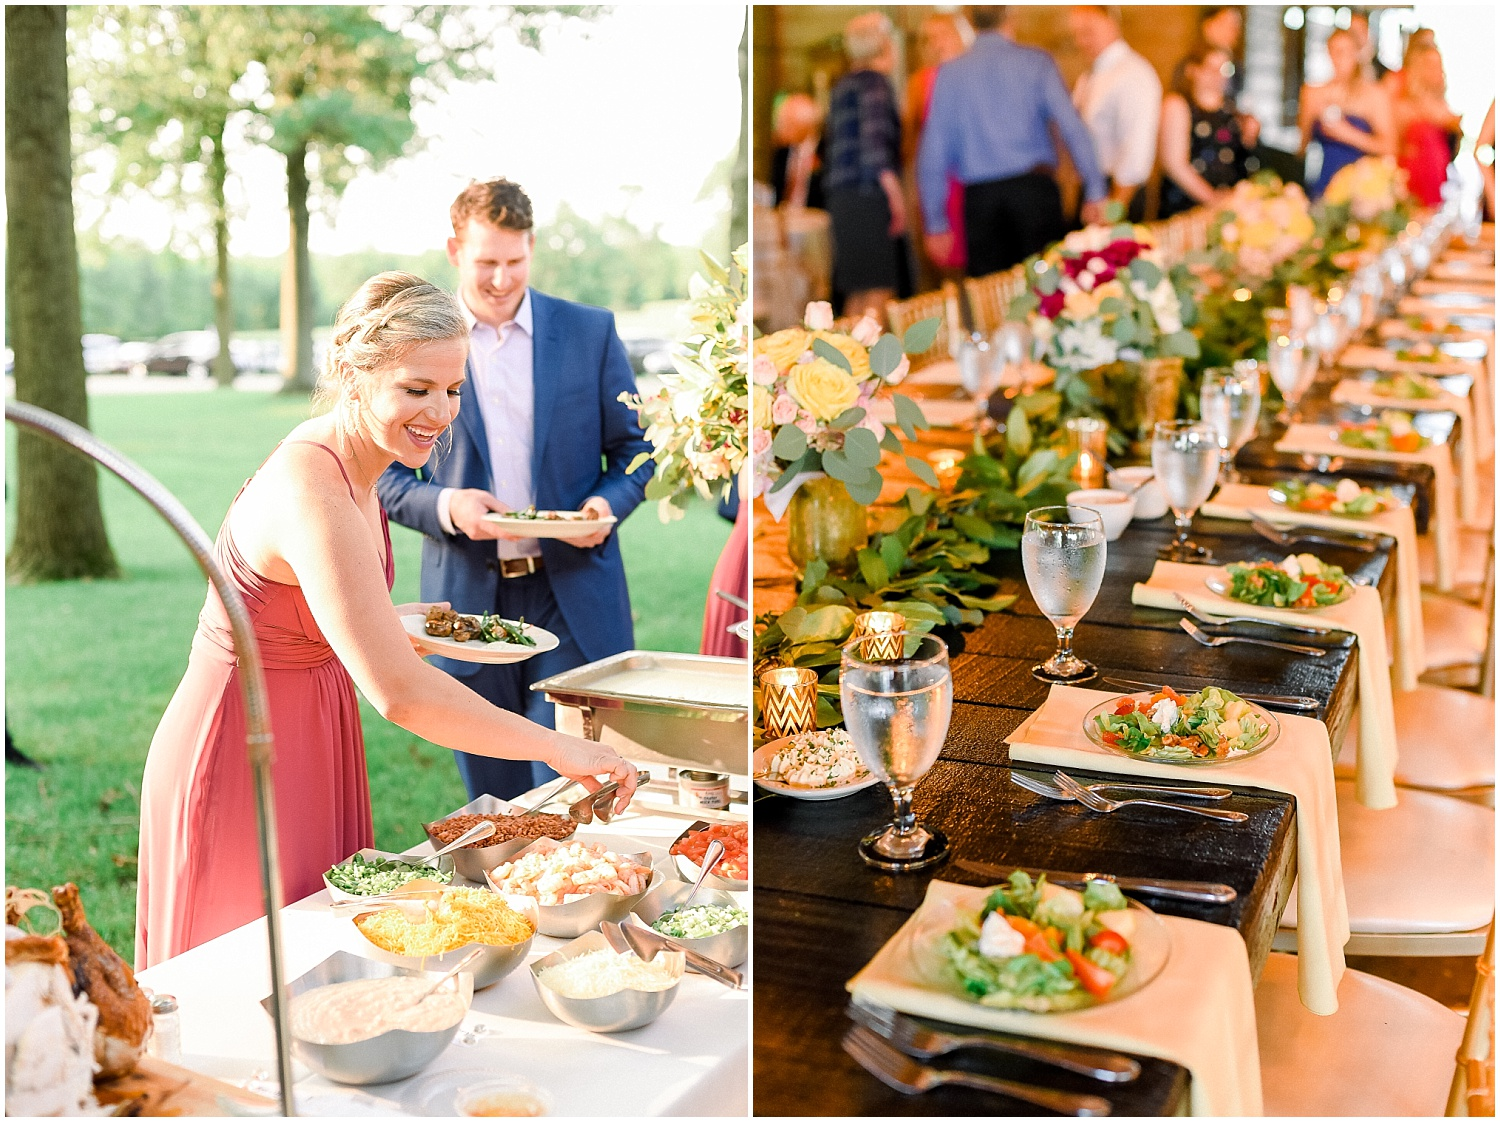 Bayou Bluegrass…one of our favorite caterers!